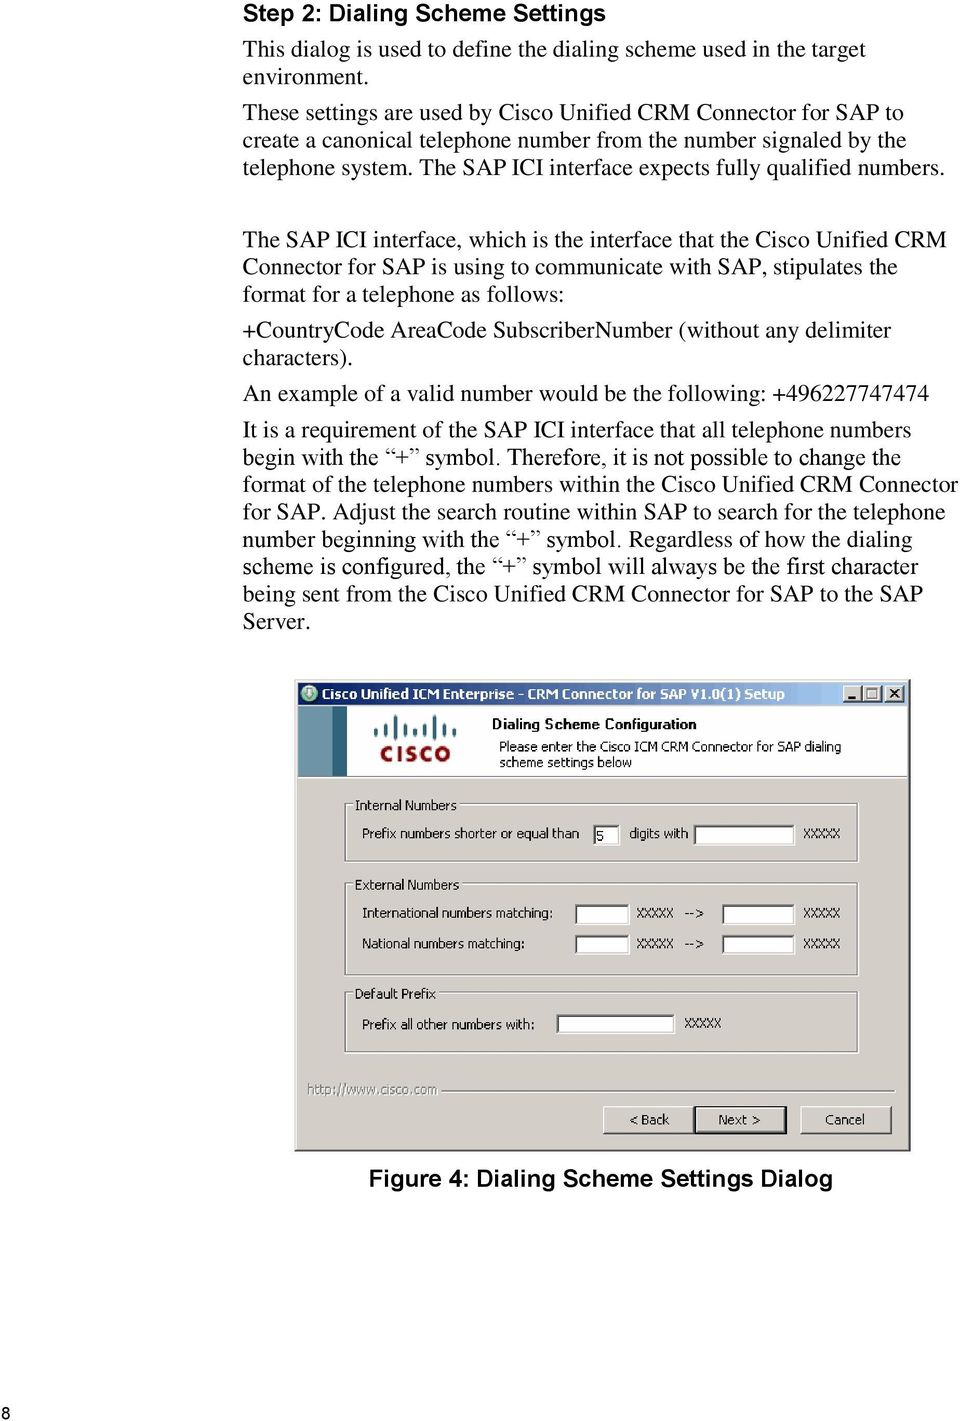 The SAP ICI interface expects fully qualified numbers.